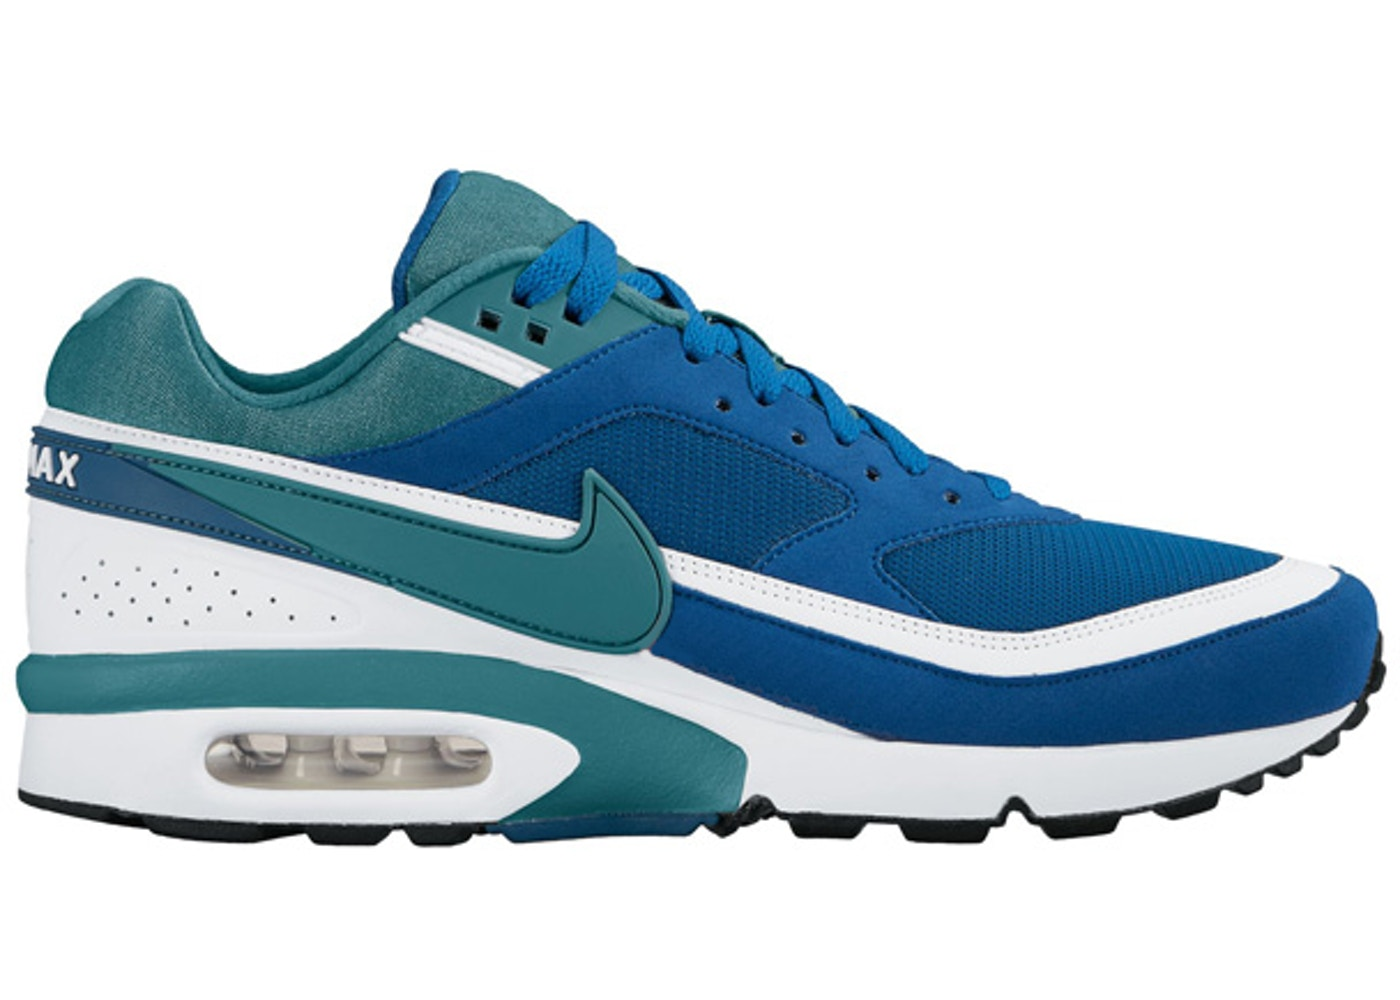 official photos 633b2 26362 Air Max BW Marina Blue (2016) Nike ...